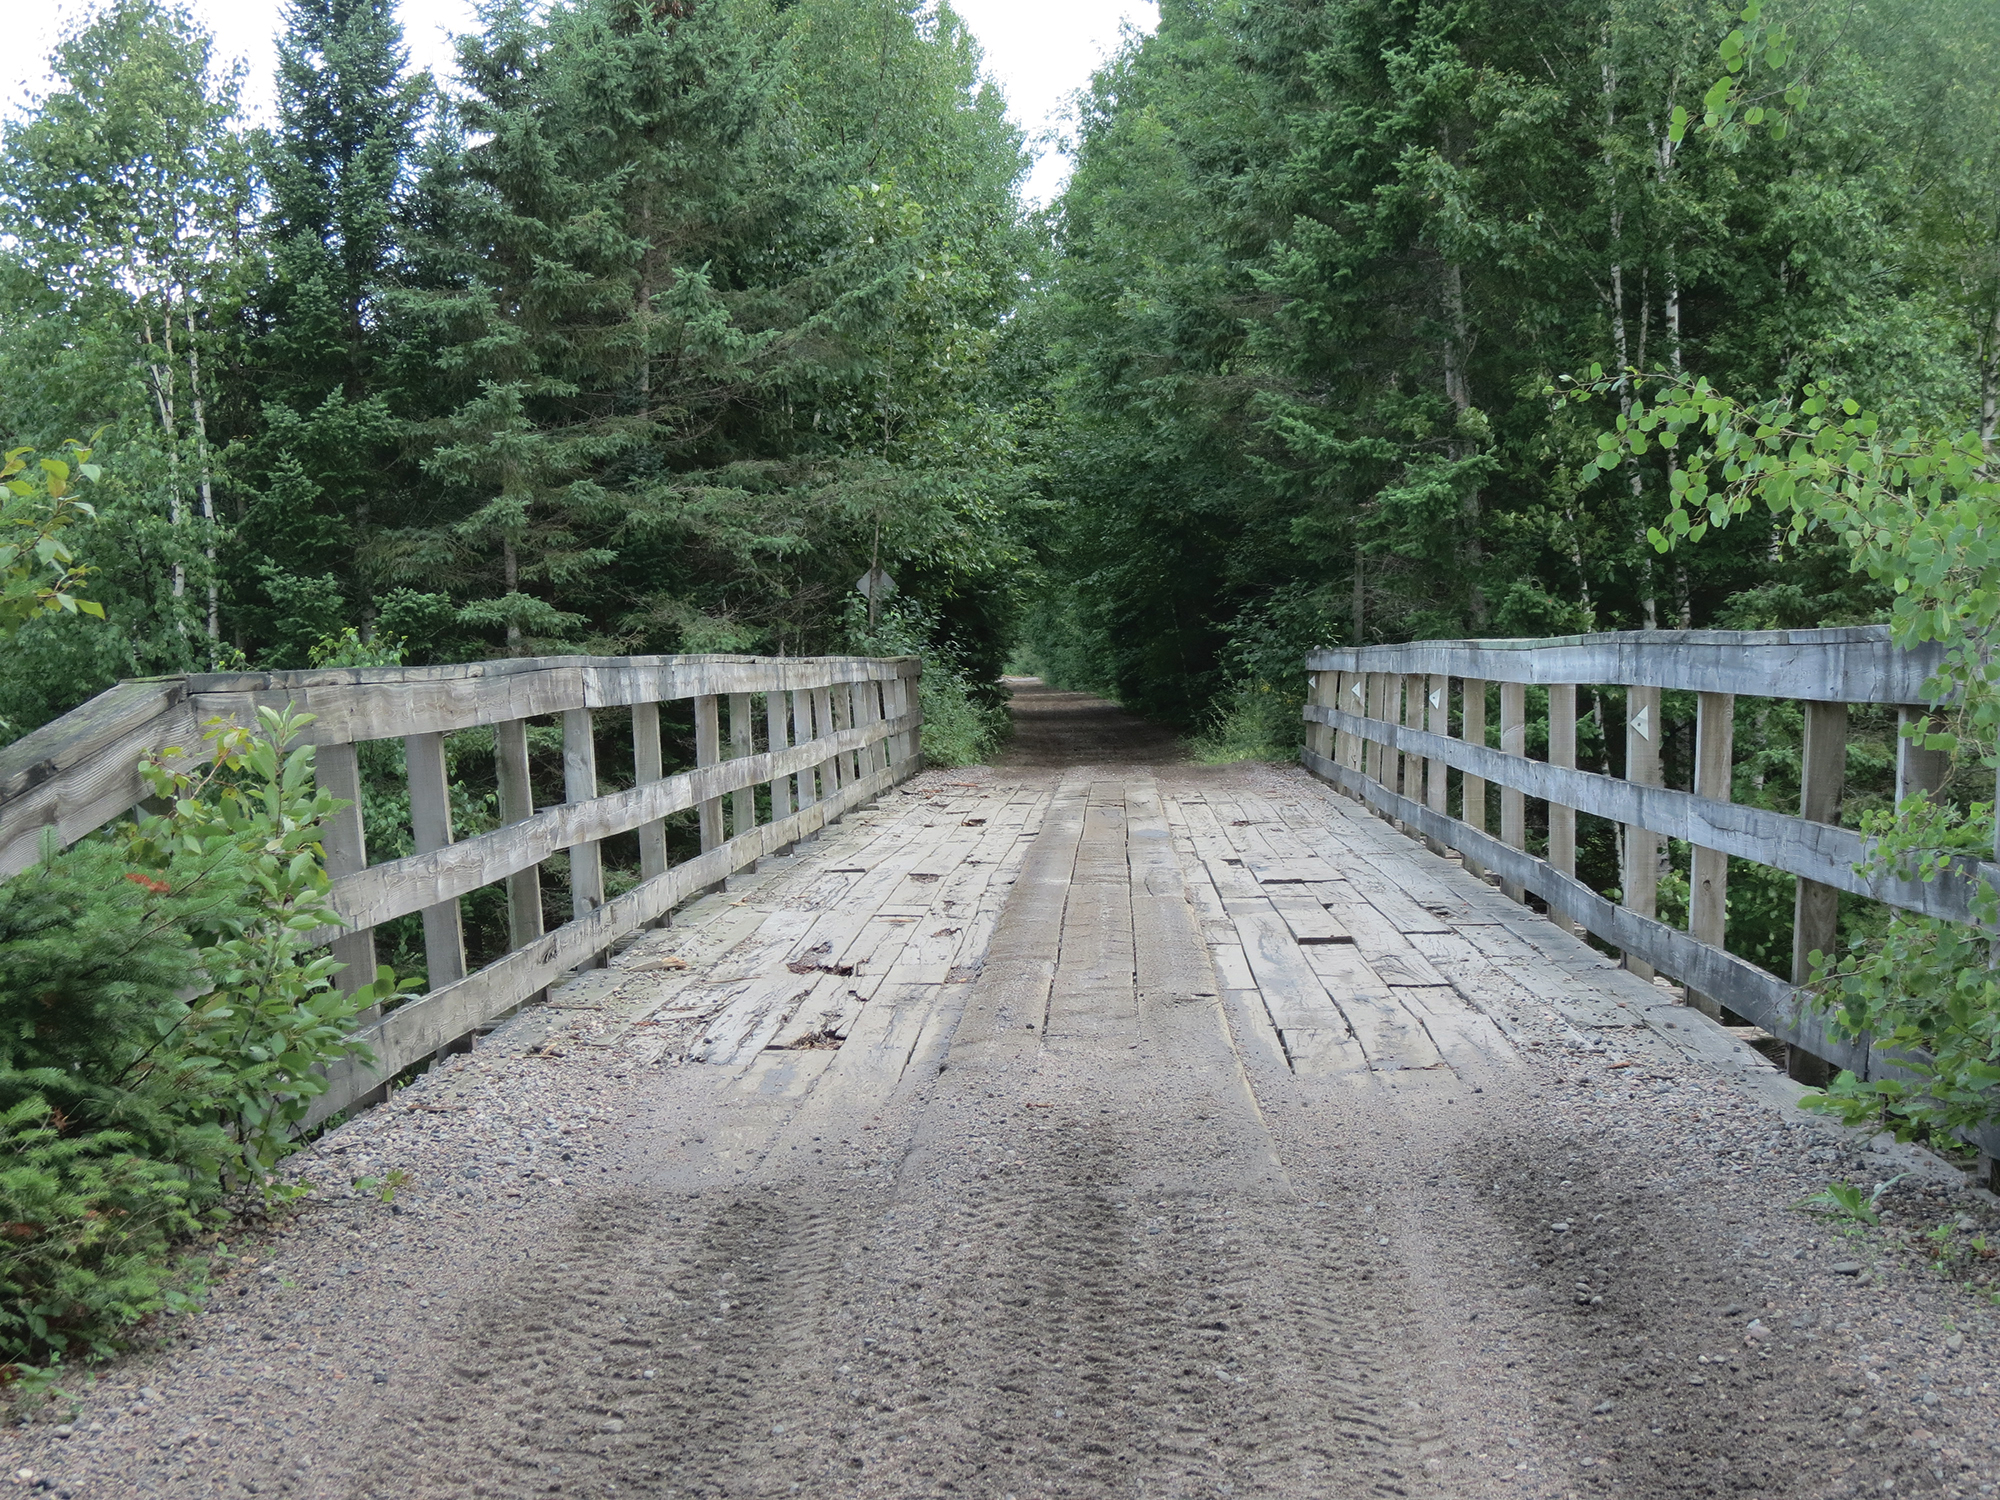 This old wooden bridge served as a trestle for locomotive travel. Photo by Sarah Vance.